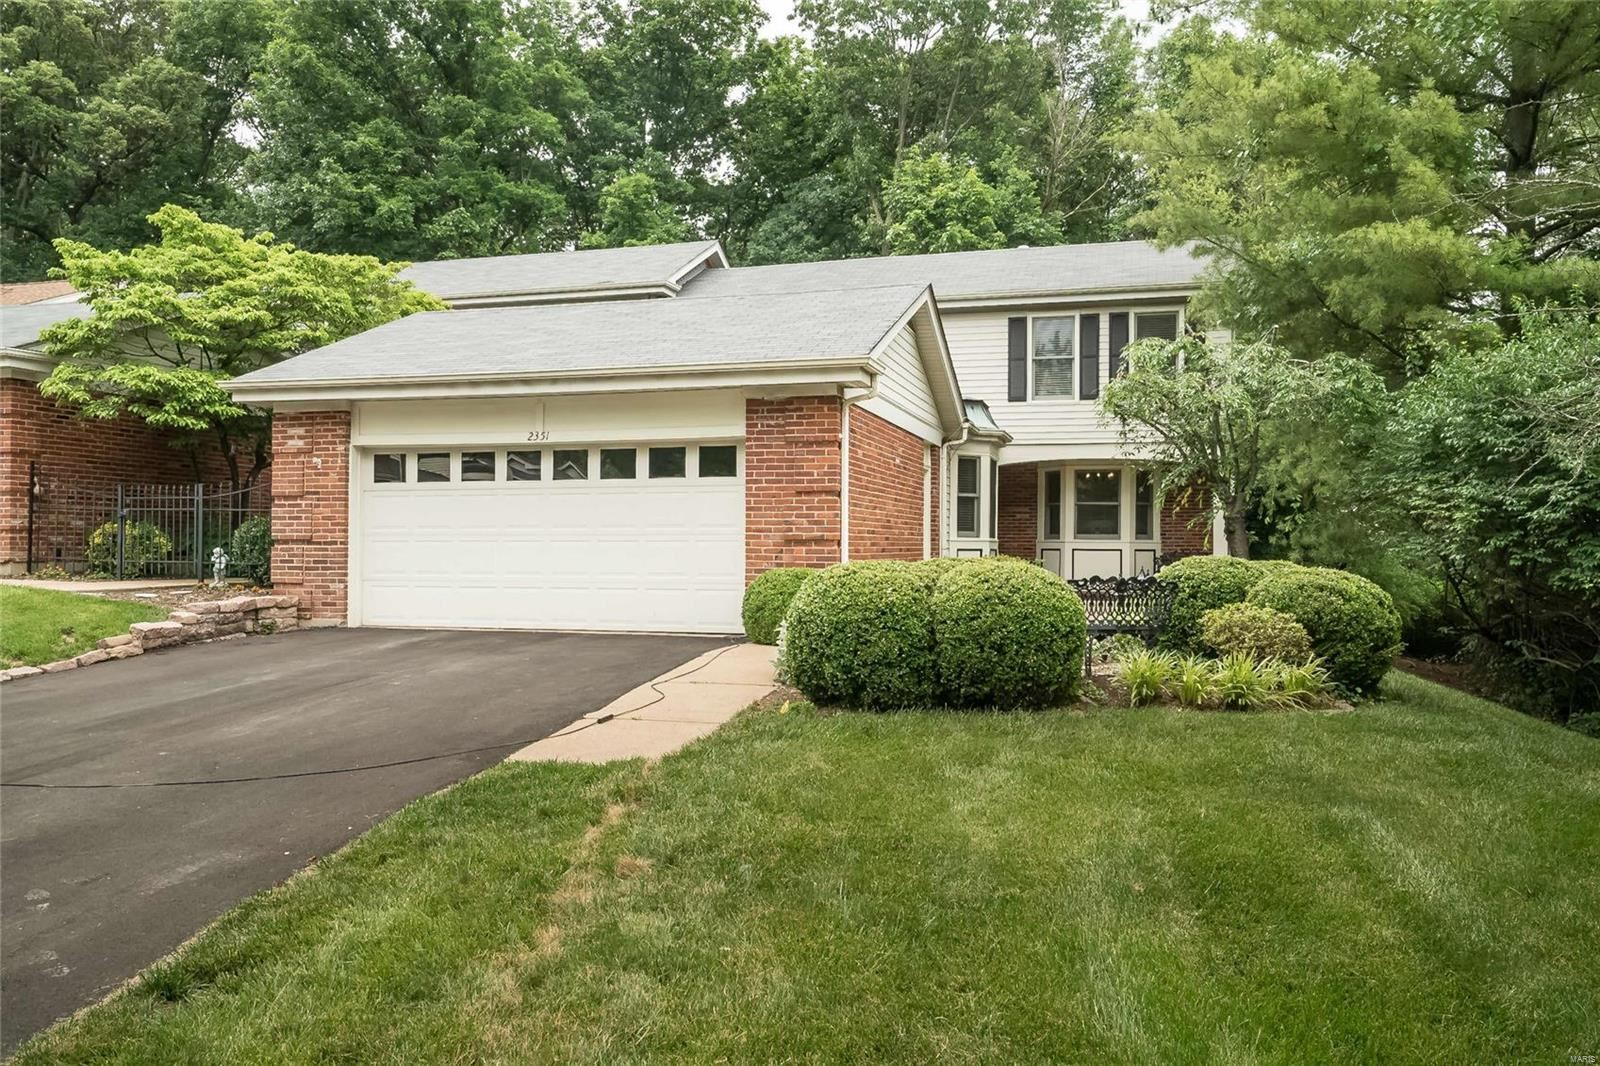 2351 Baxton Way, Chesterfield, MO 63017 - MLS#: 21050843